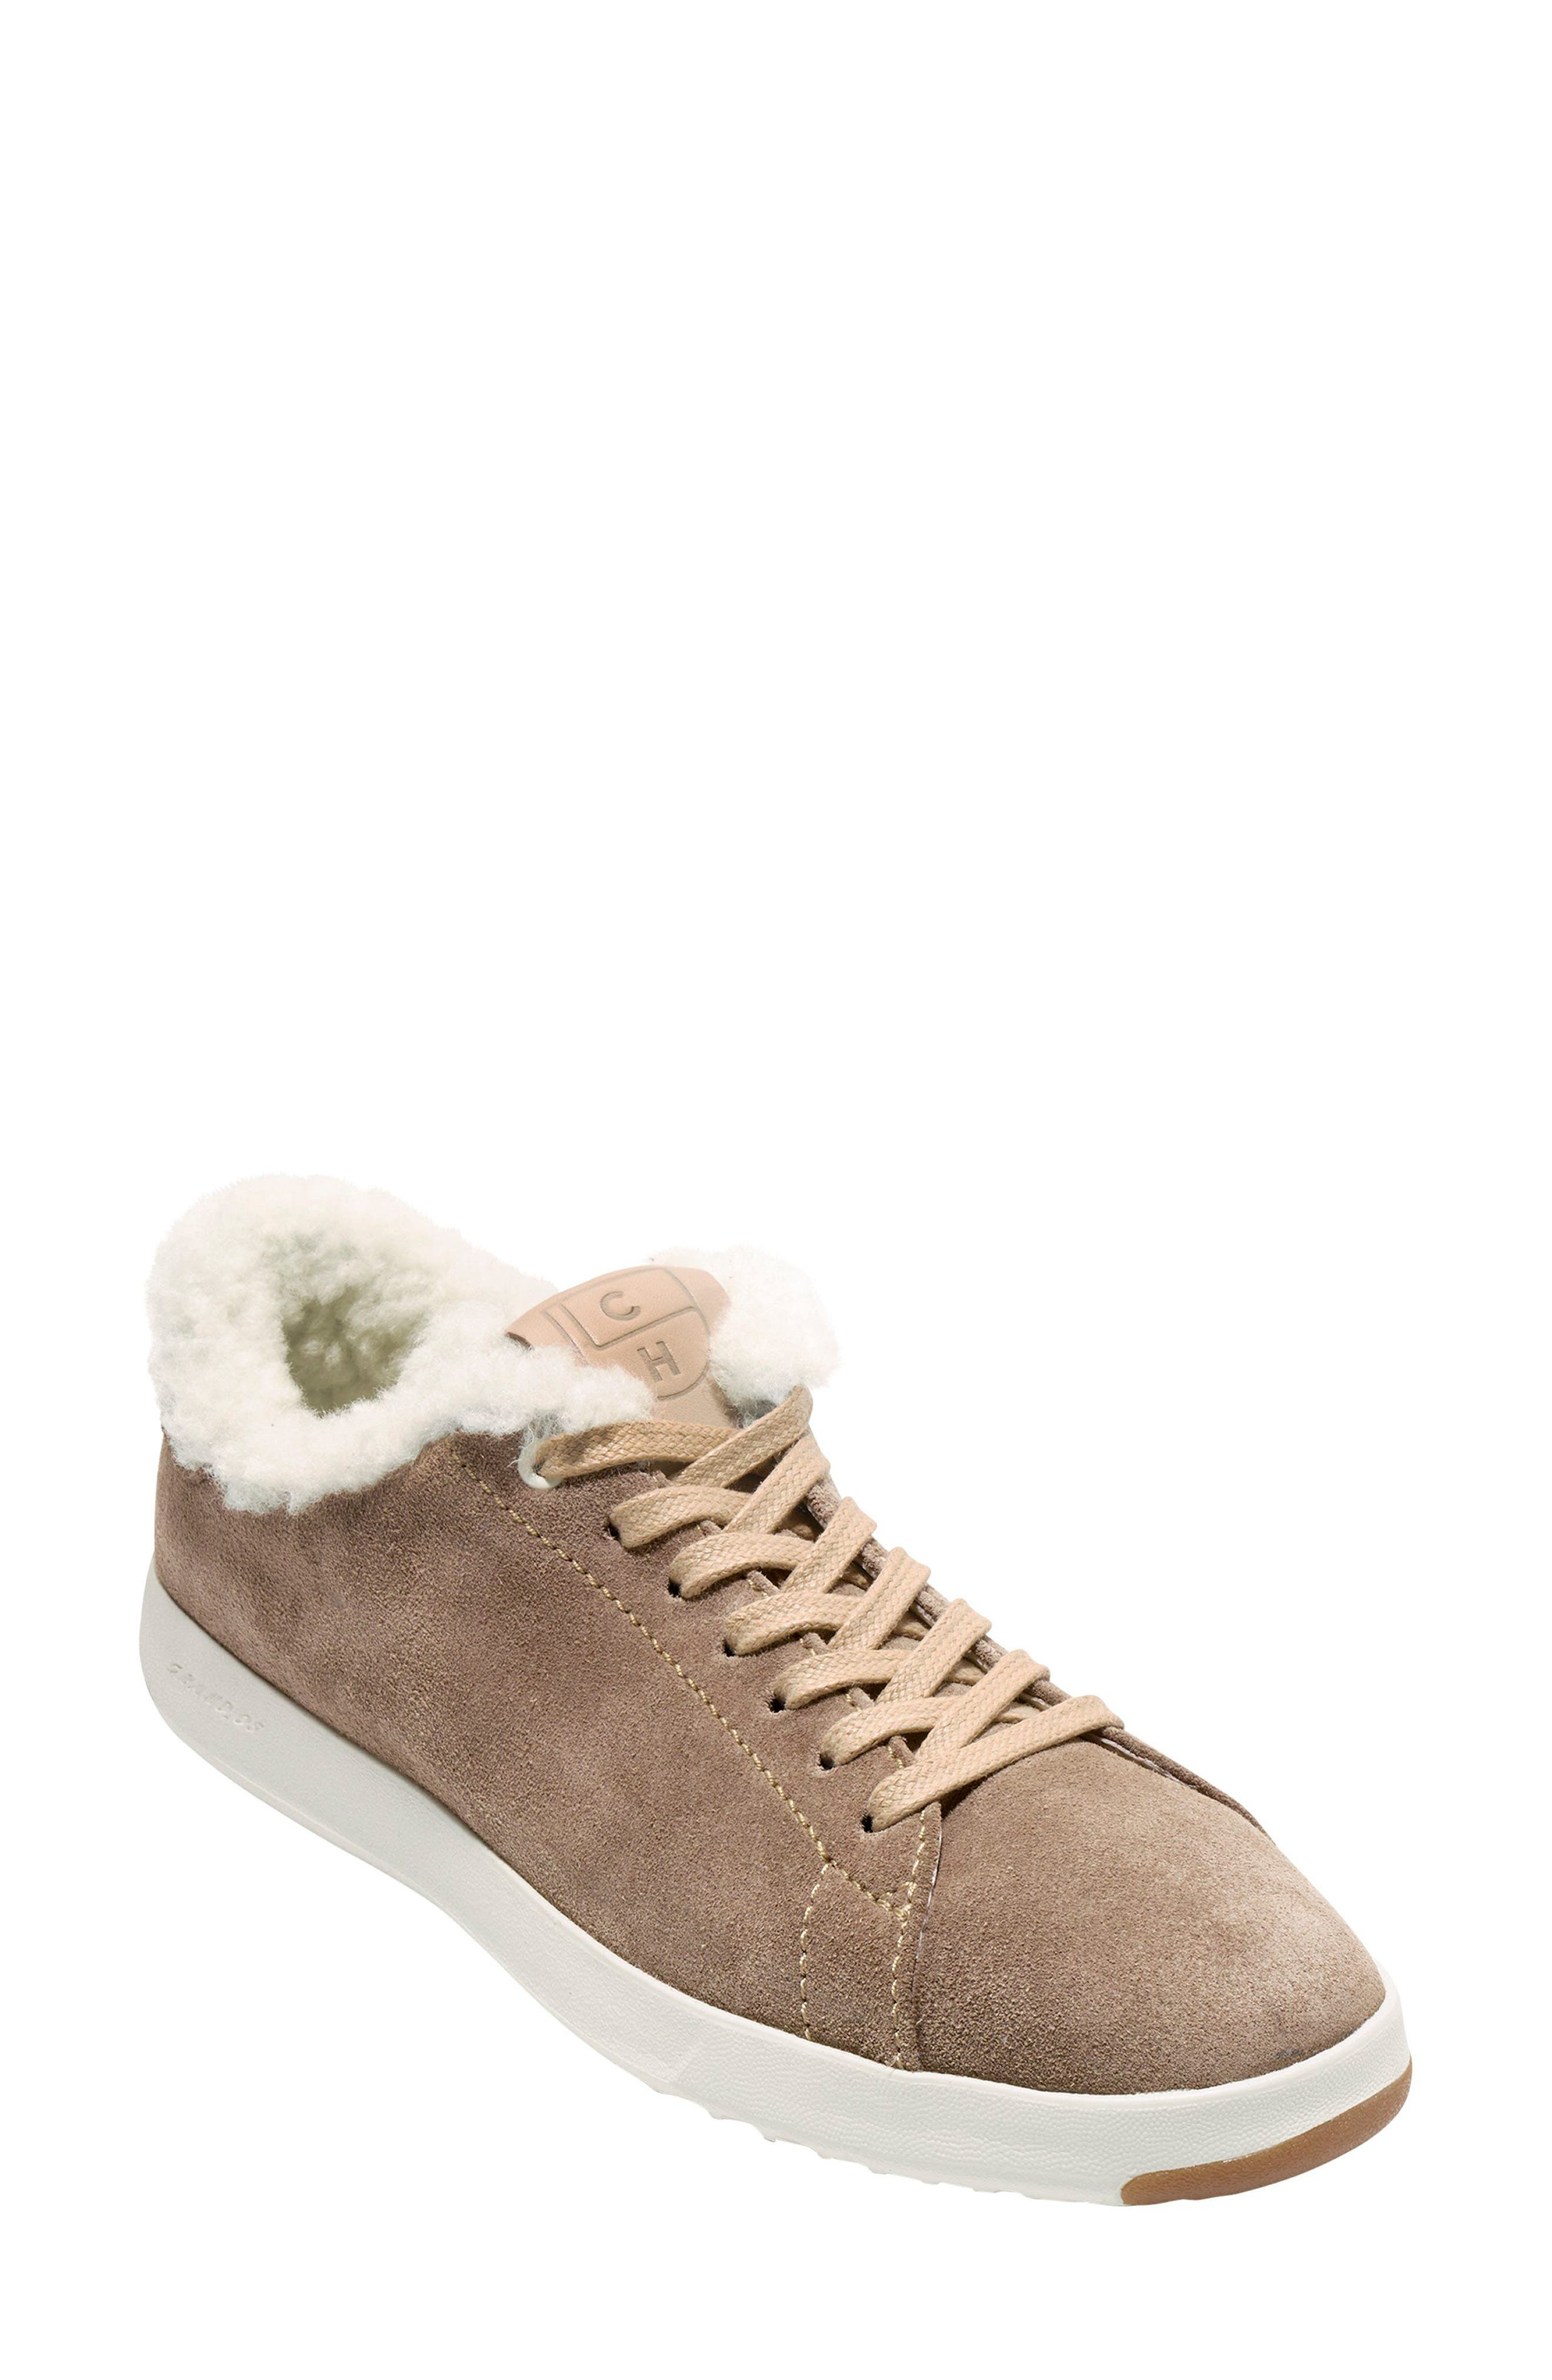 GrandPro Tennis Shoe,                             Main thumbnail 1, color,                             Warm Sand Suede